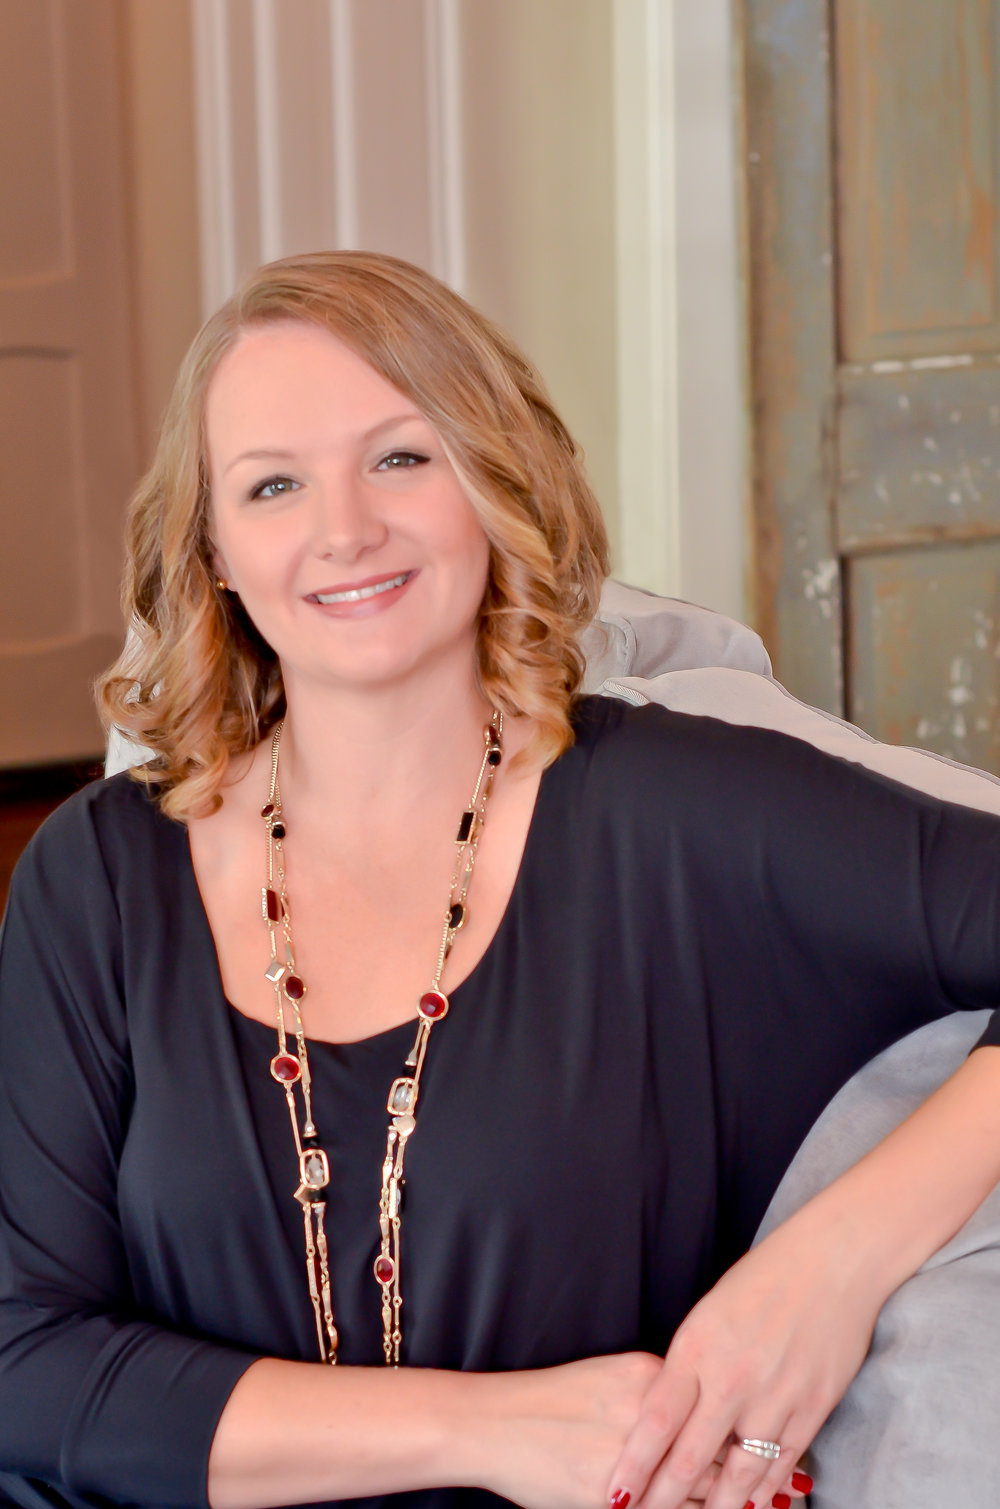 Tiffany Edwards RID, CKD, ASID - Owner & Principal DesignerTiffany's interior design career began nine years ago in the Dallas/Fort Worth area, but a passion for her hometown and the desire to start a family brought her back to Houston three years later. Whether the project is large or small, Tiffany seeks to create a unique space tailored to each client while enhancing the overall lifestyle.She is a graduate of Stephen F. Austin State University with a bachelor's degree in Interior Design and a minor in Art. Ax Em' Jacks! She is also a Registered Interior Designer (RID) with the State of Texas and a Certified Kitchen Designer (CKD).Tiffany and her husband Santana have been married since 2006 and currently reside in the Richmond/Katy, TX area with their daughter, Tatum.Tiffany's Credentials:Registered Interior Designer for the State of Texas (RID) #10671Certified Kitchen Designer (CKD)Industry Member of the National Kitchen & Bath Association (NKBA)Professional Member of the American Society and Interior Designers (ASID)